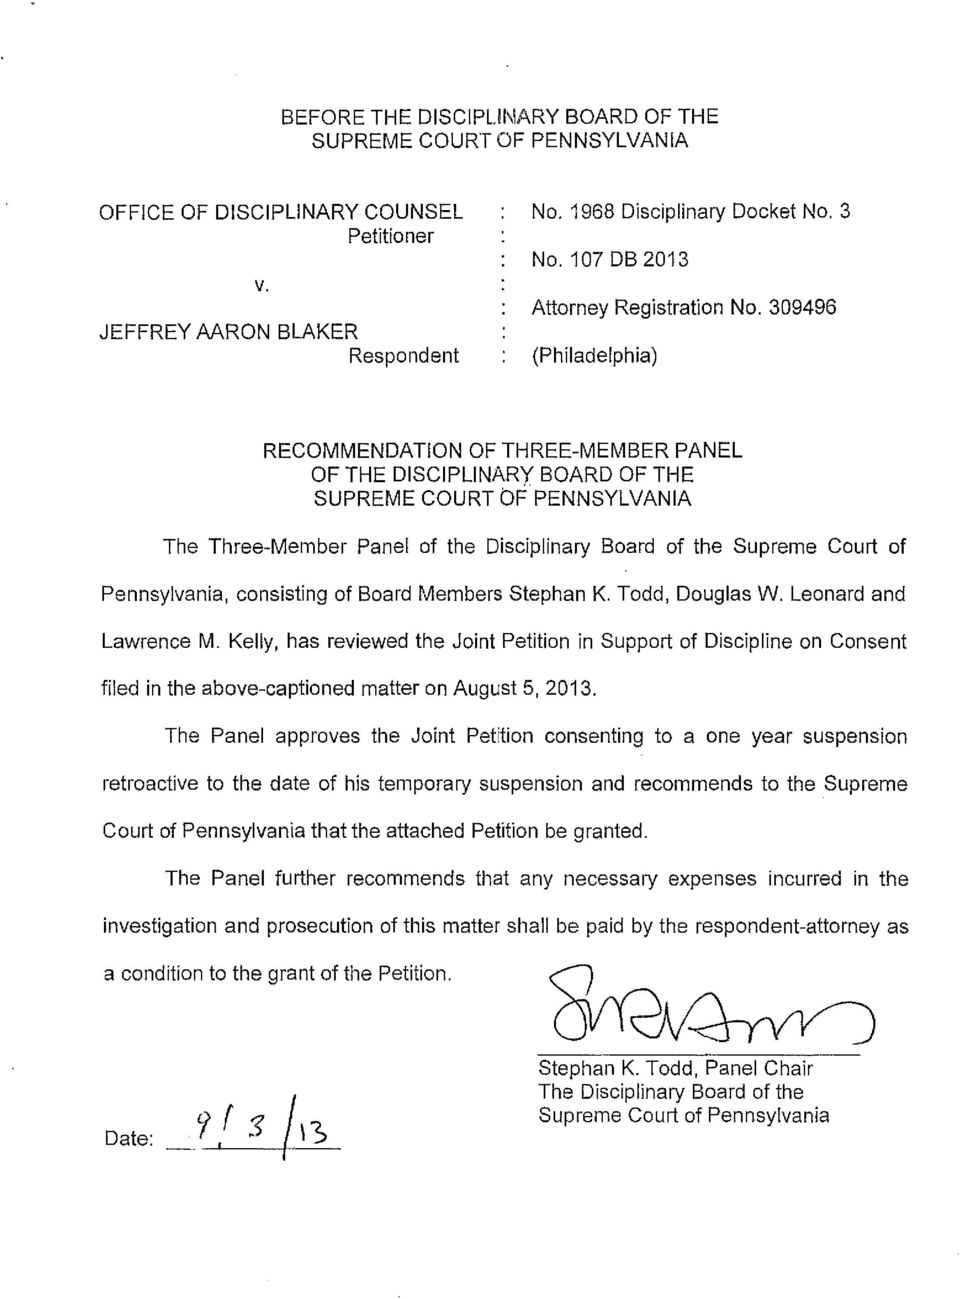 309496 (Philadelphia) RECOMMENDATION OF THREE-MEMBER PANEL OF THE DISCIPLINARY BOARD OF THE SUPREME COURT OF PENNSYLVANIA The Three-Member Panel of the Disciplinary Board of the Supreme Court of